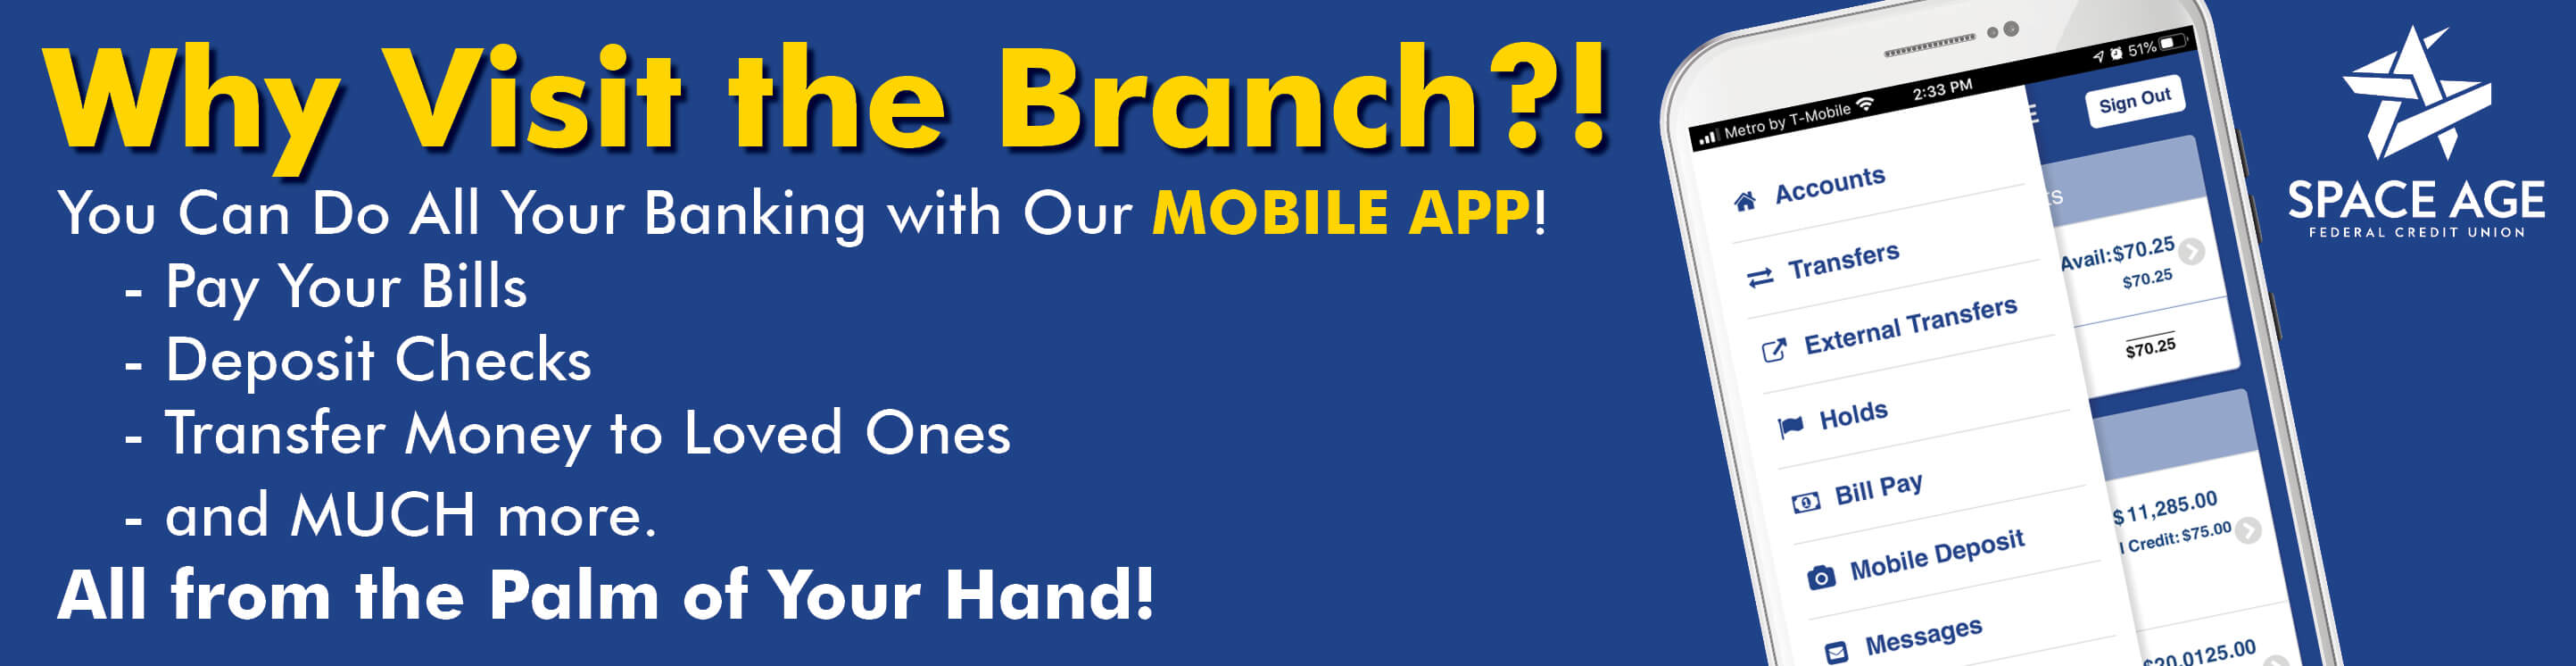 Use our MOBILE APP to Easily Pay Your Bills, Deposit Checks, Transfer Money to Loved Ones and MUCH more.